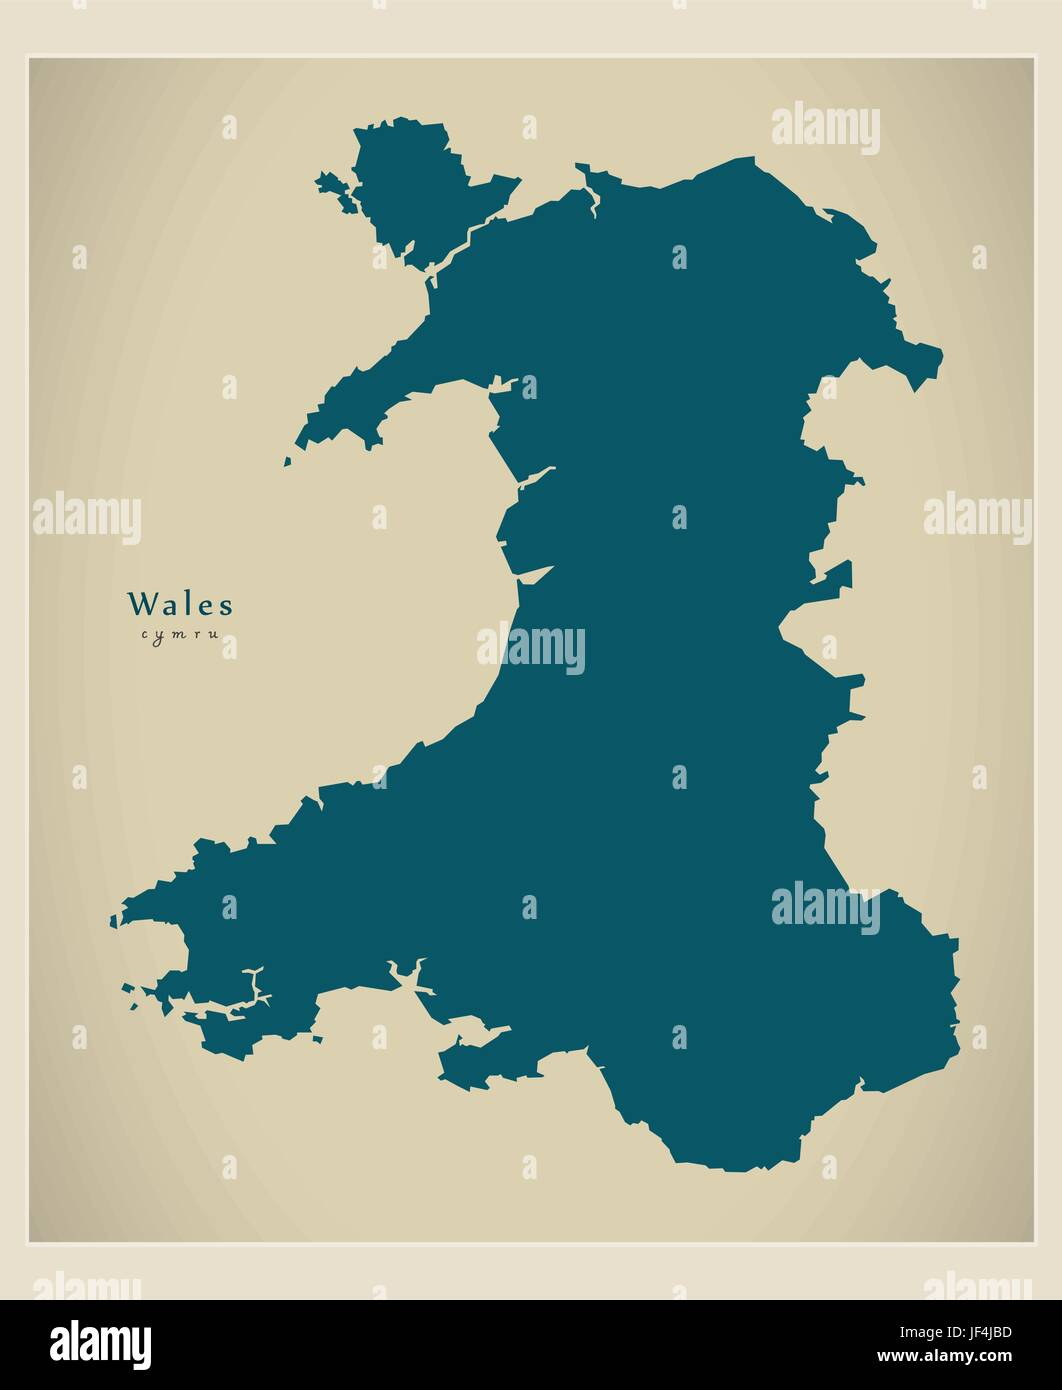 Modern map wales uk stock vector art illustration vector image modern map wales uk gumiabroncs Image collections